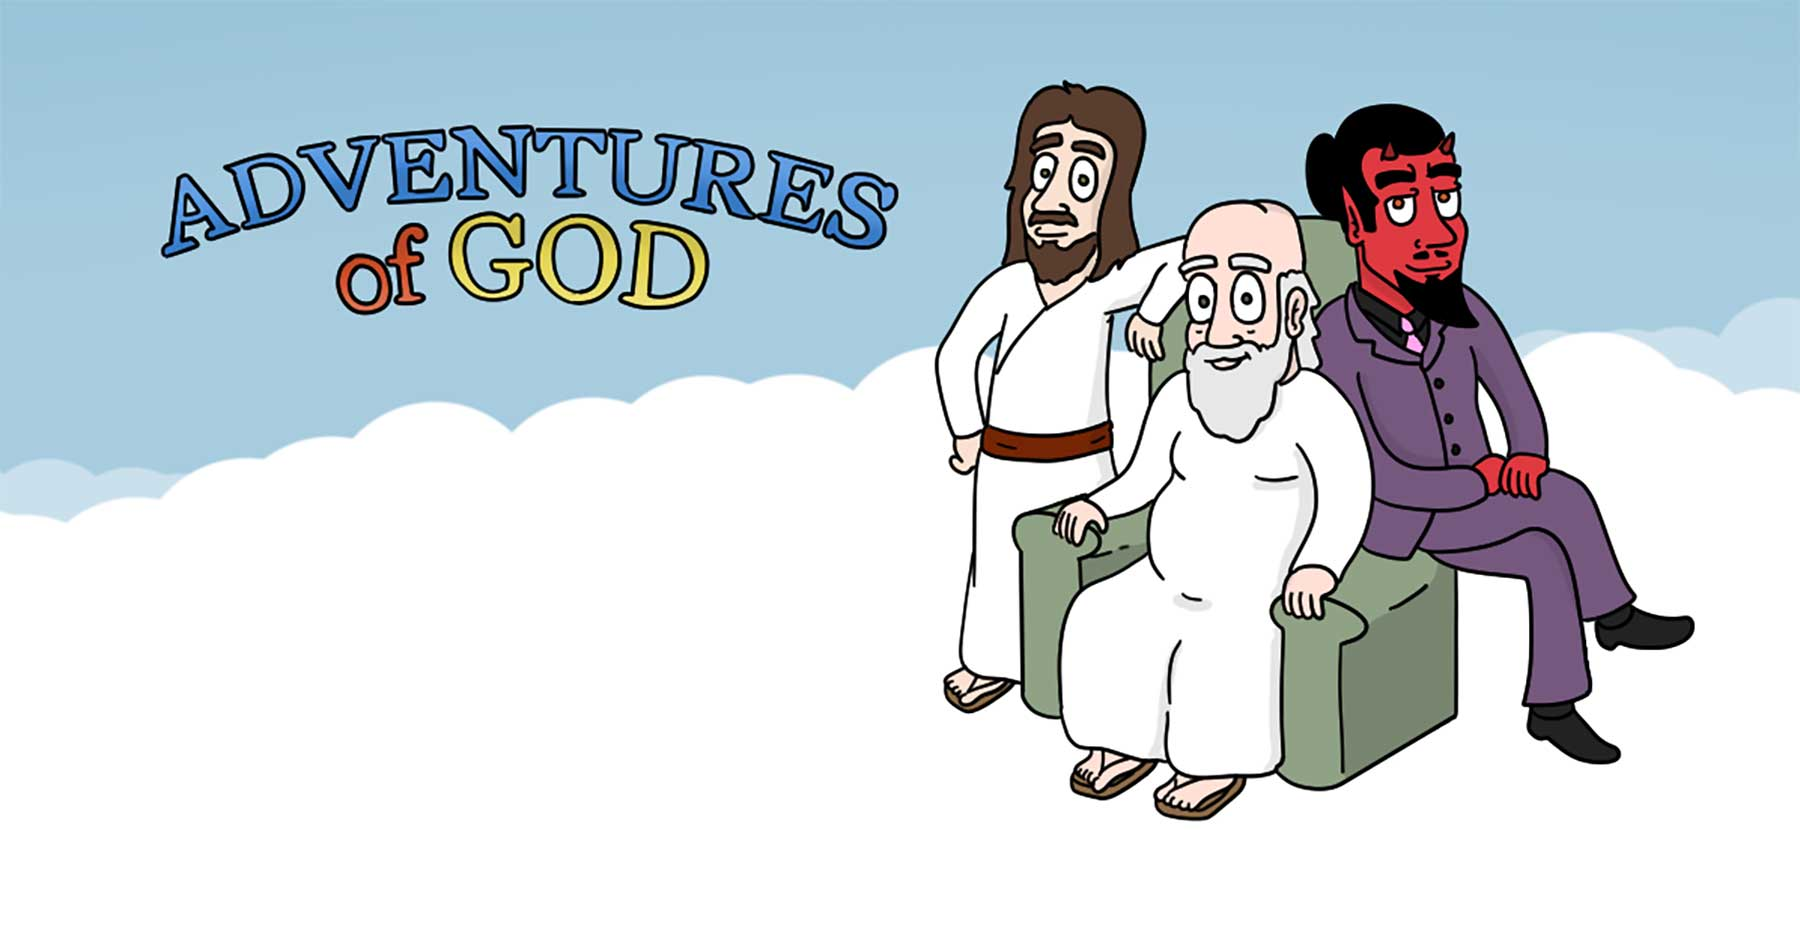 Lustiger Webcomic: Adventures of God adventures-of-god-webcomic_01